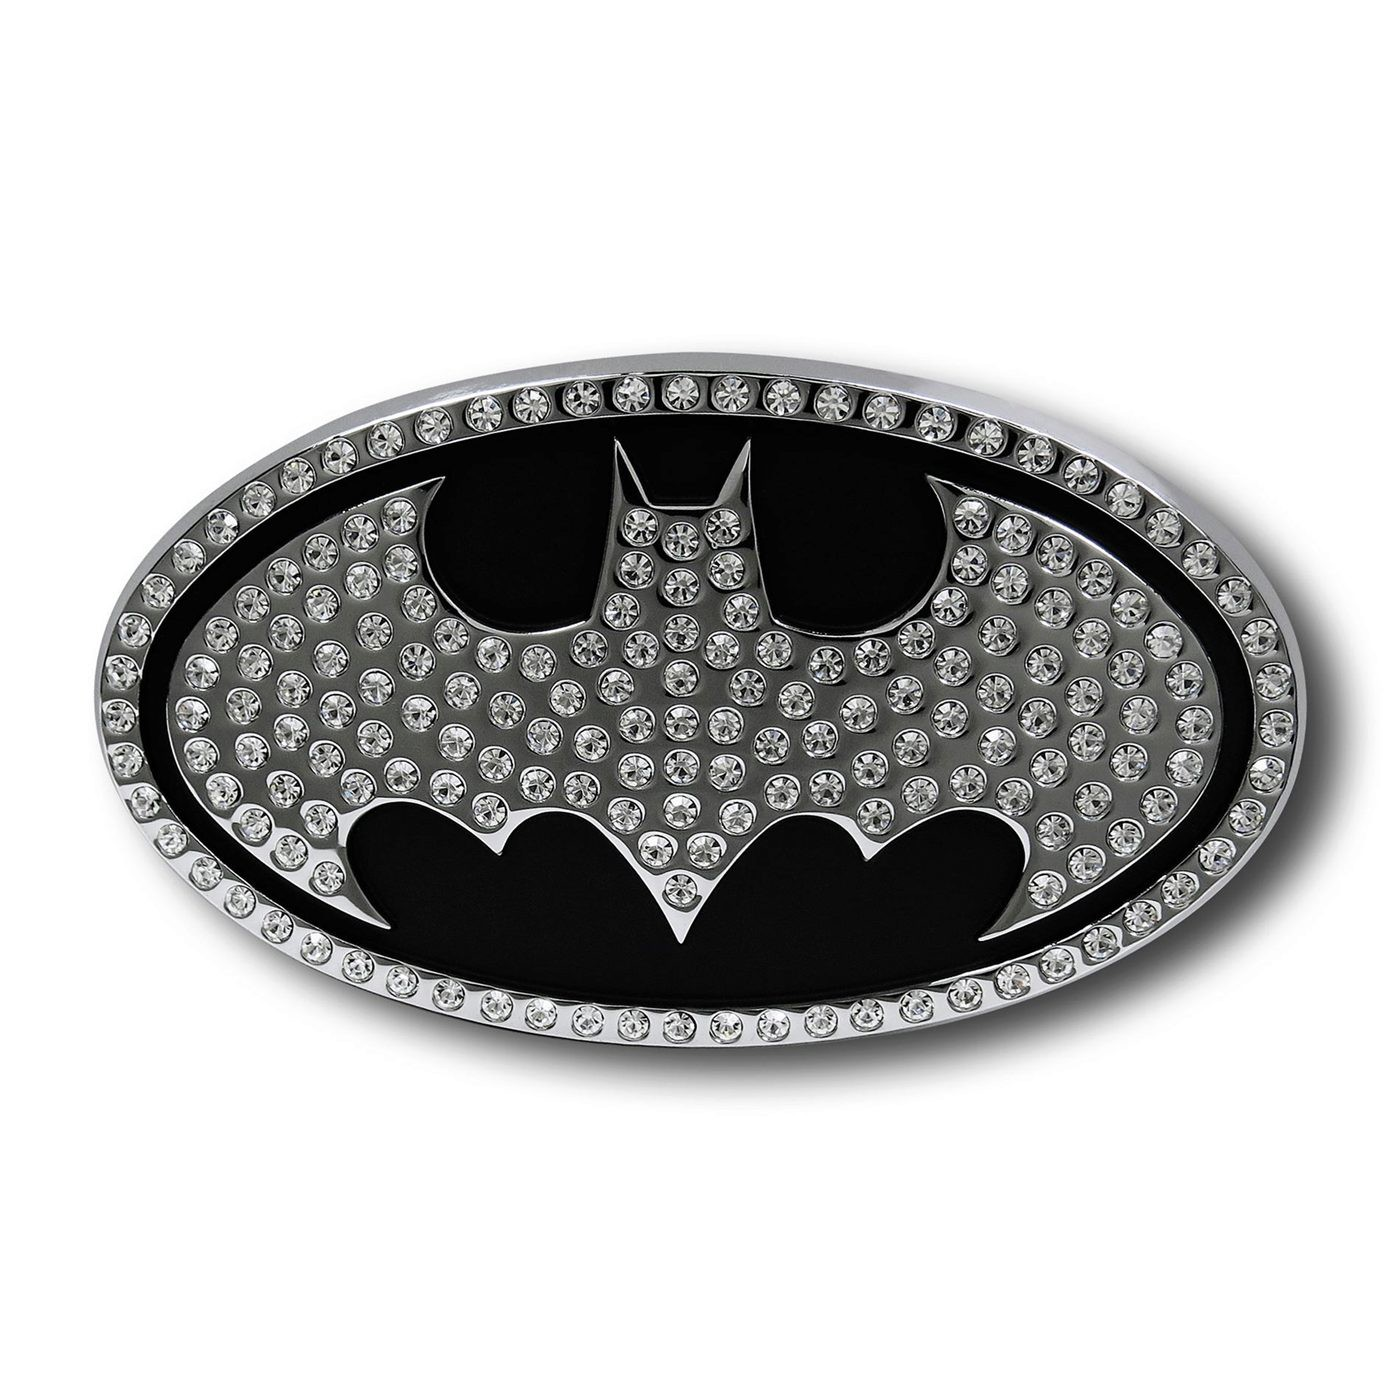 Batman Bling Symbol 3D Plastic Car Emblem